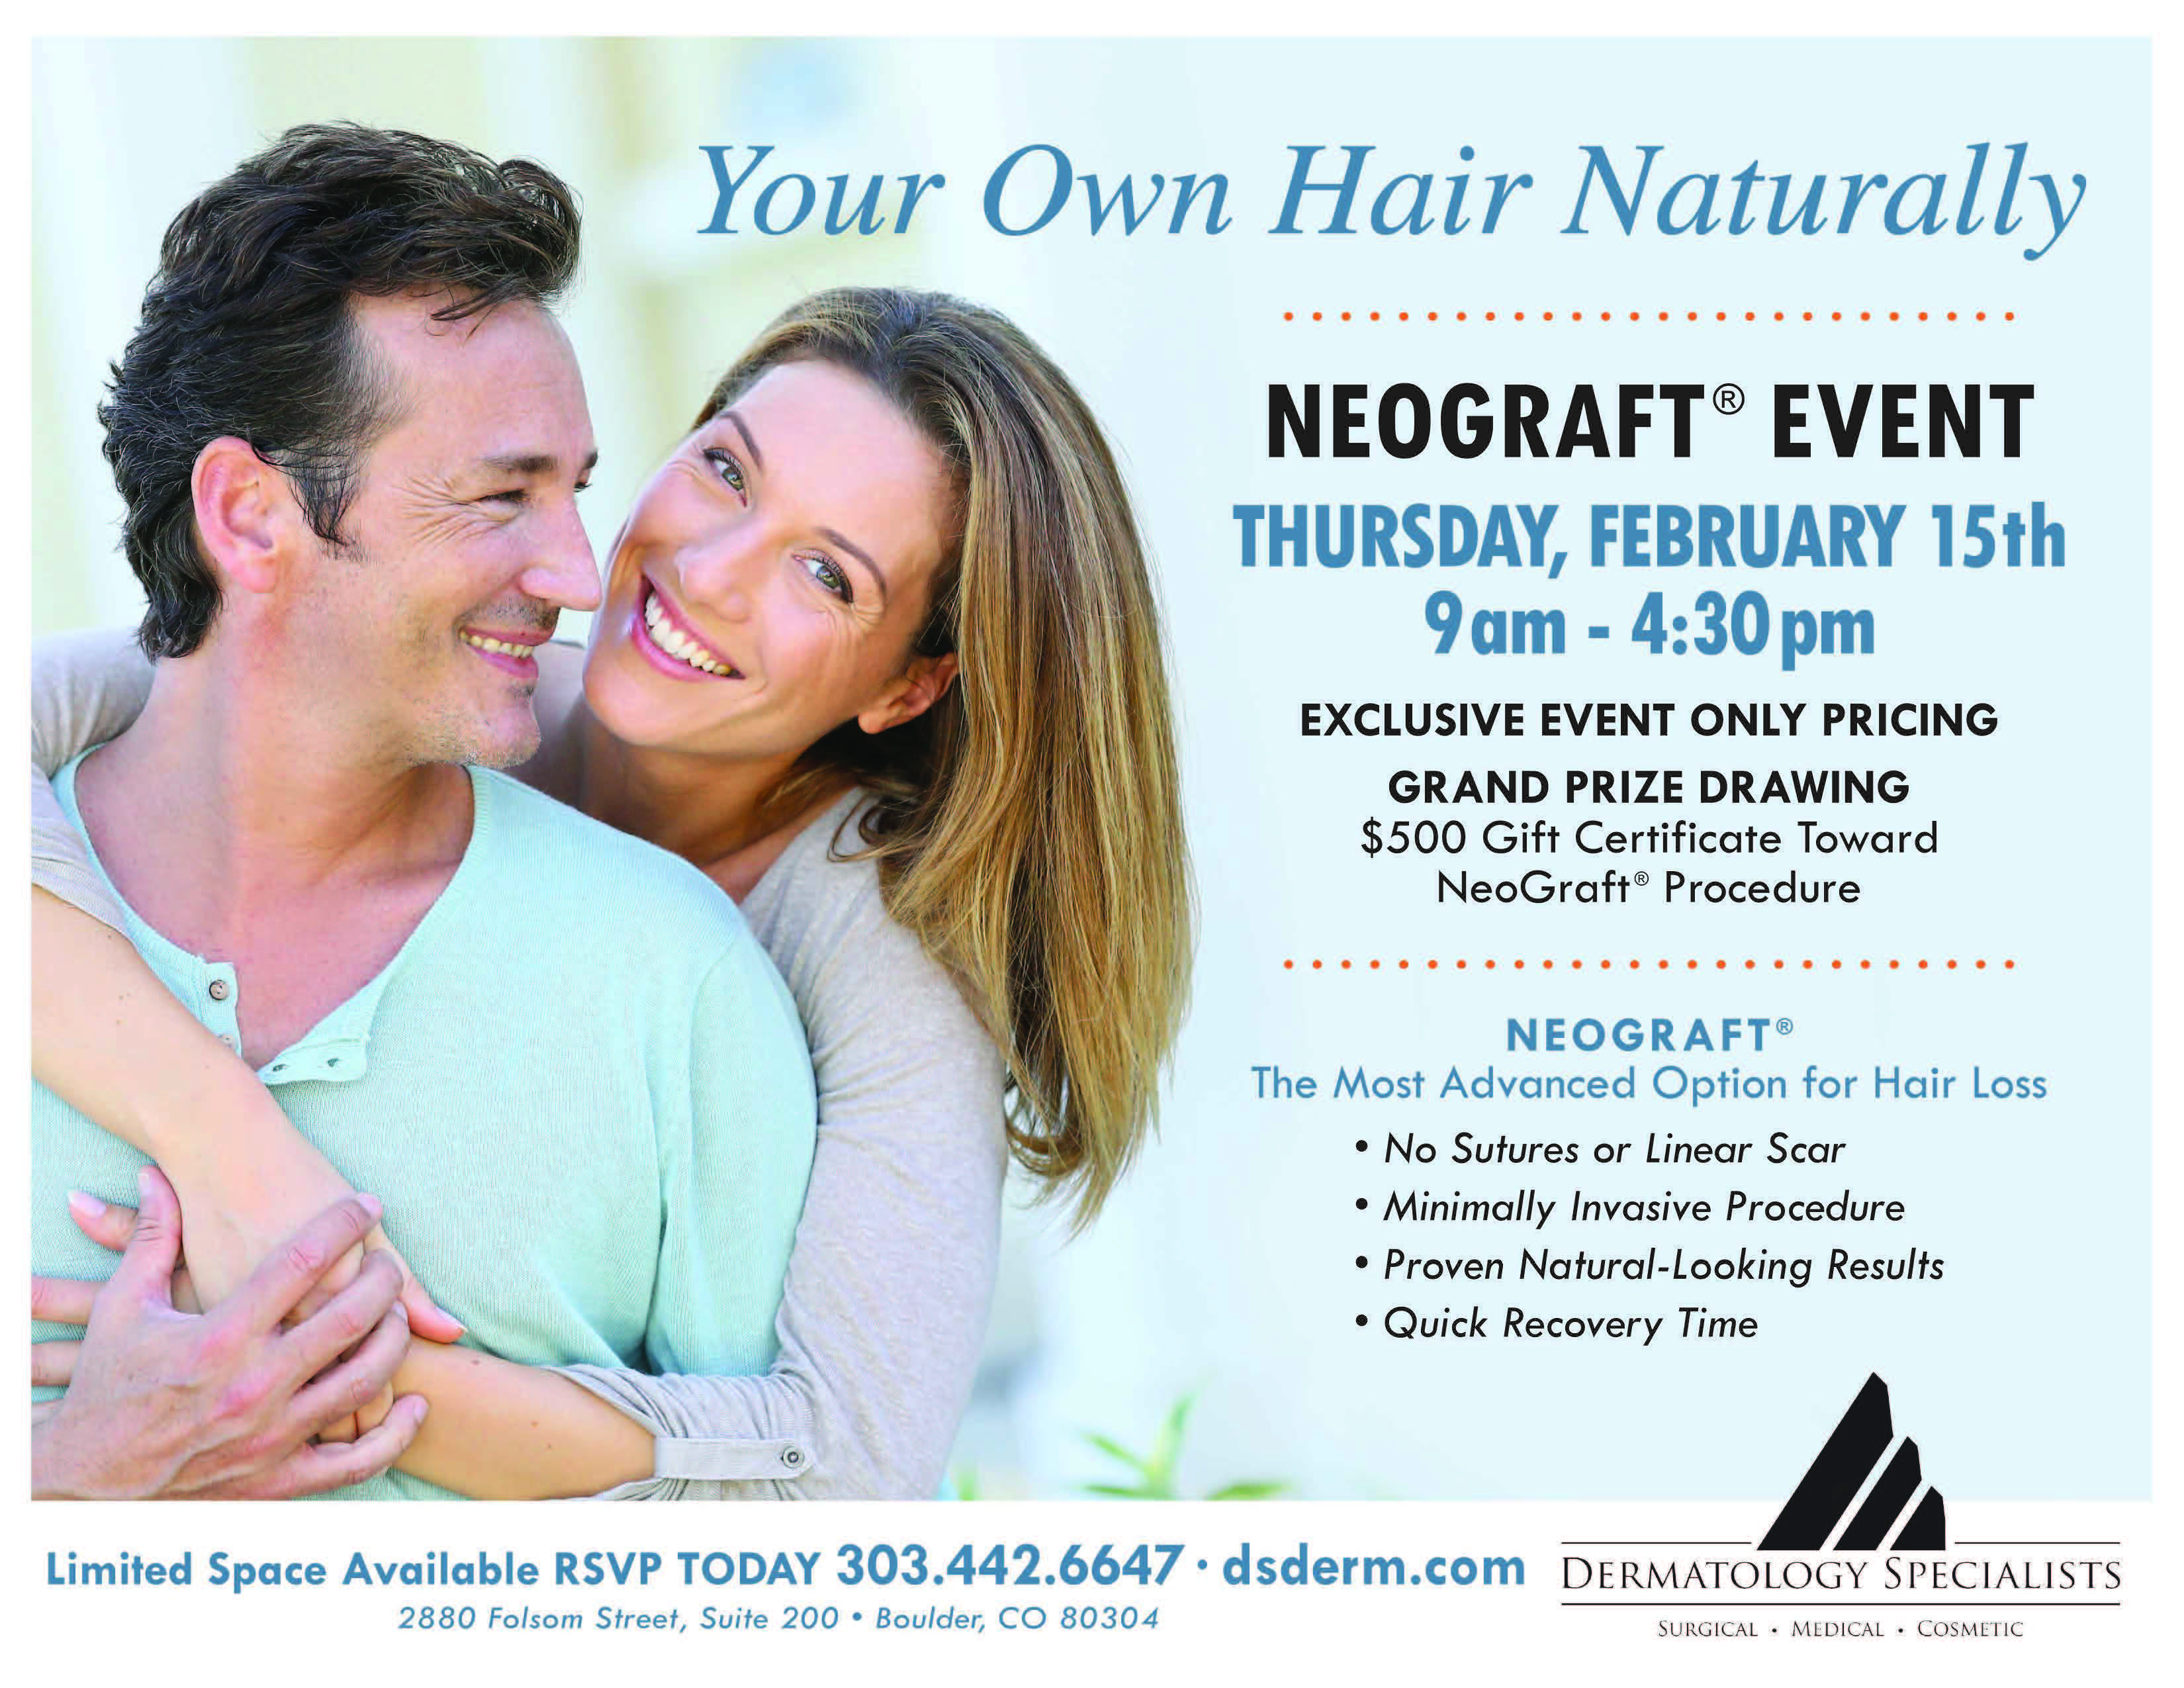 NEOGRAFT EVENT FLYER | Dermatology Specialists